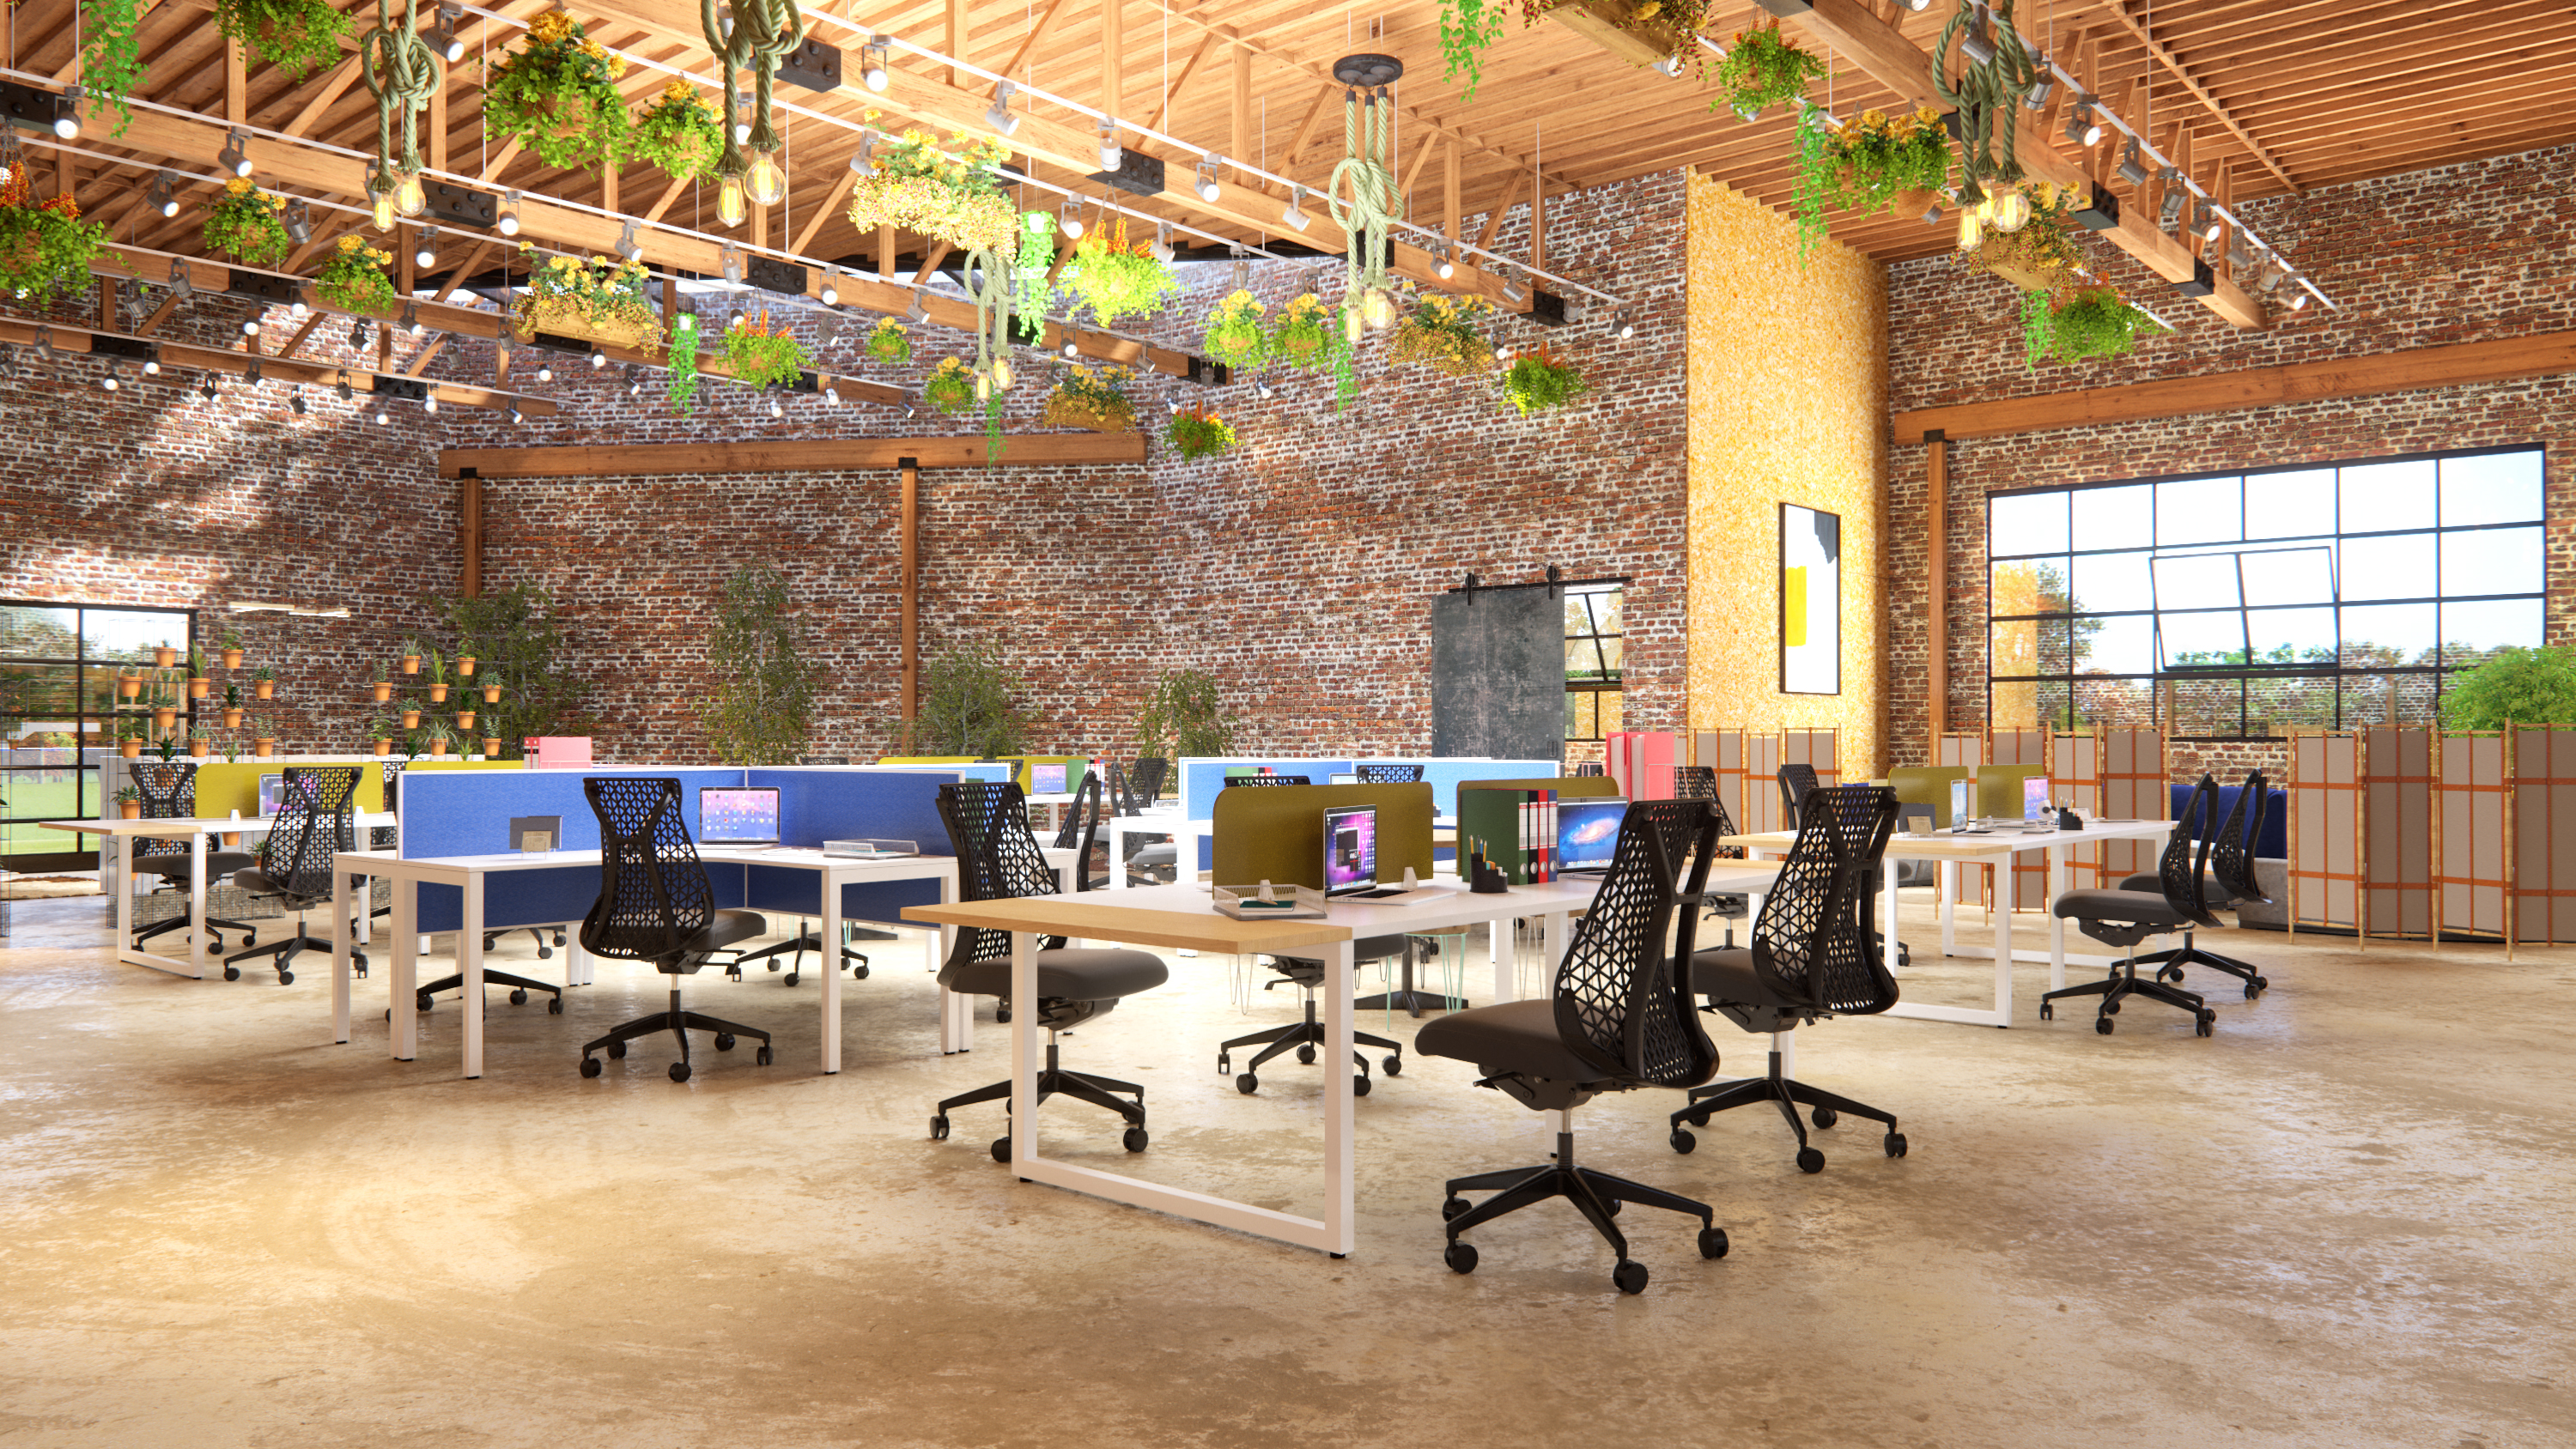 Industrial Office Workplace with Brick Walls, Plants, Greenery, 4 Person Workstations and Ergonomic Office Chairs